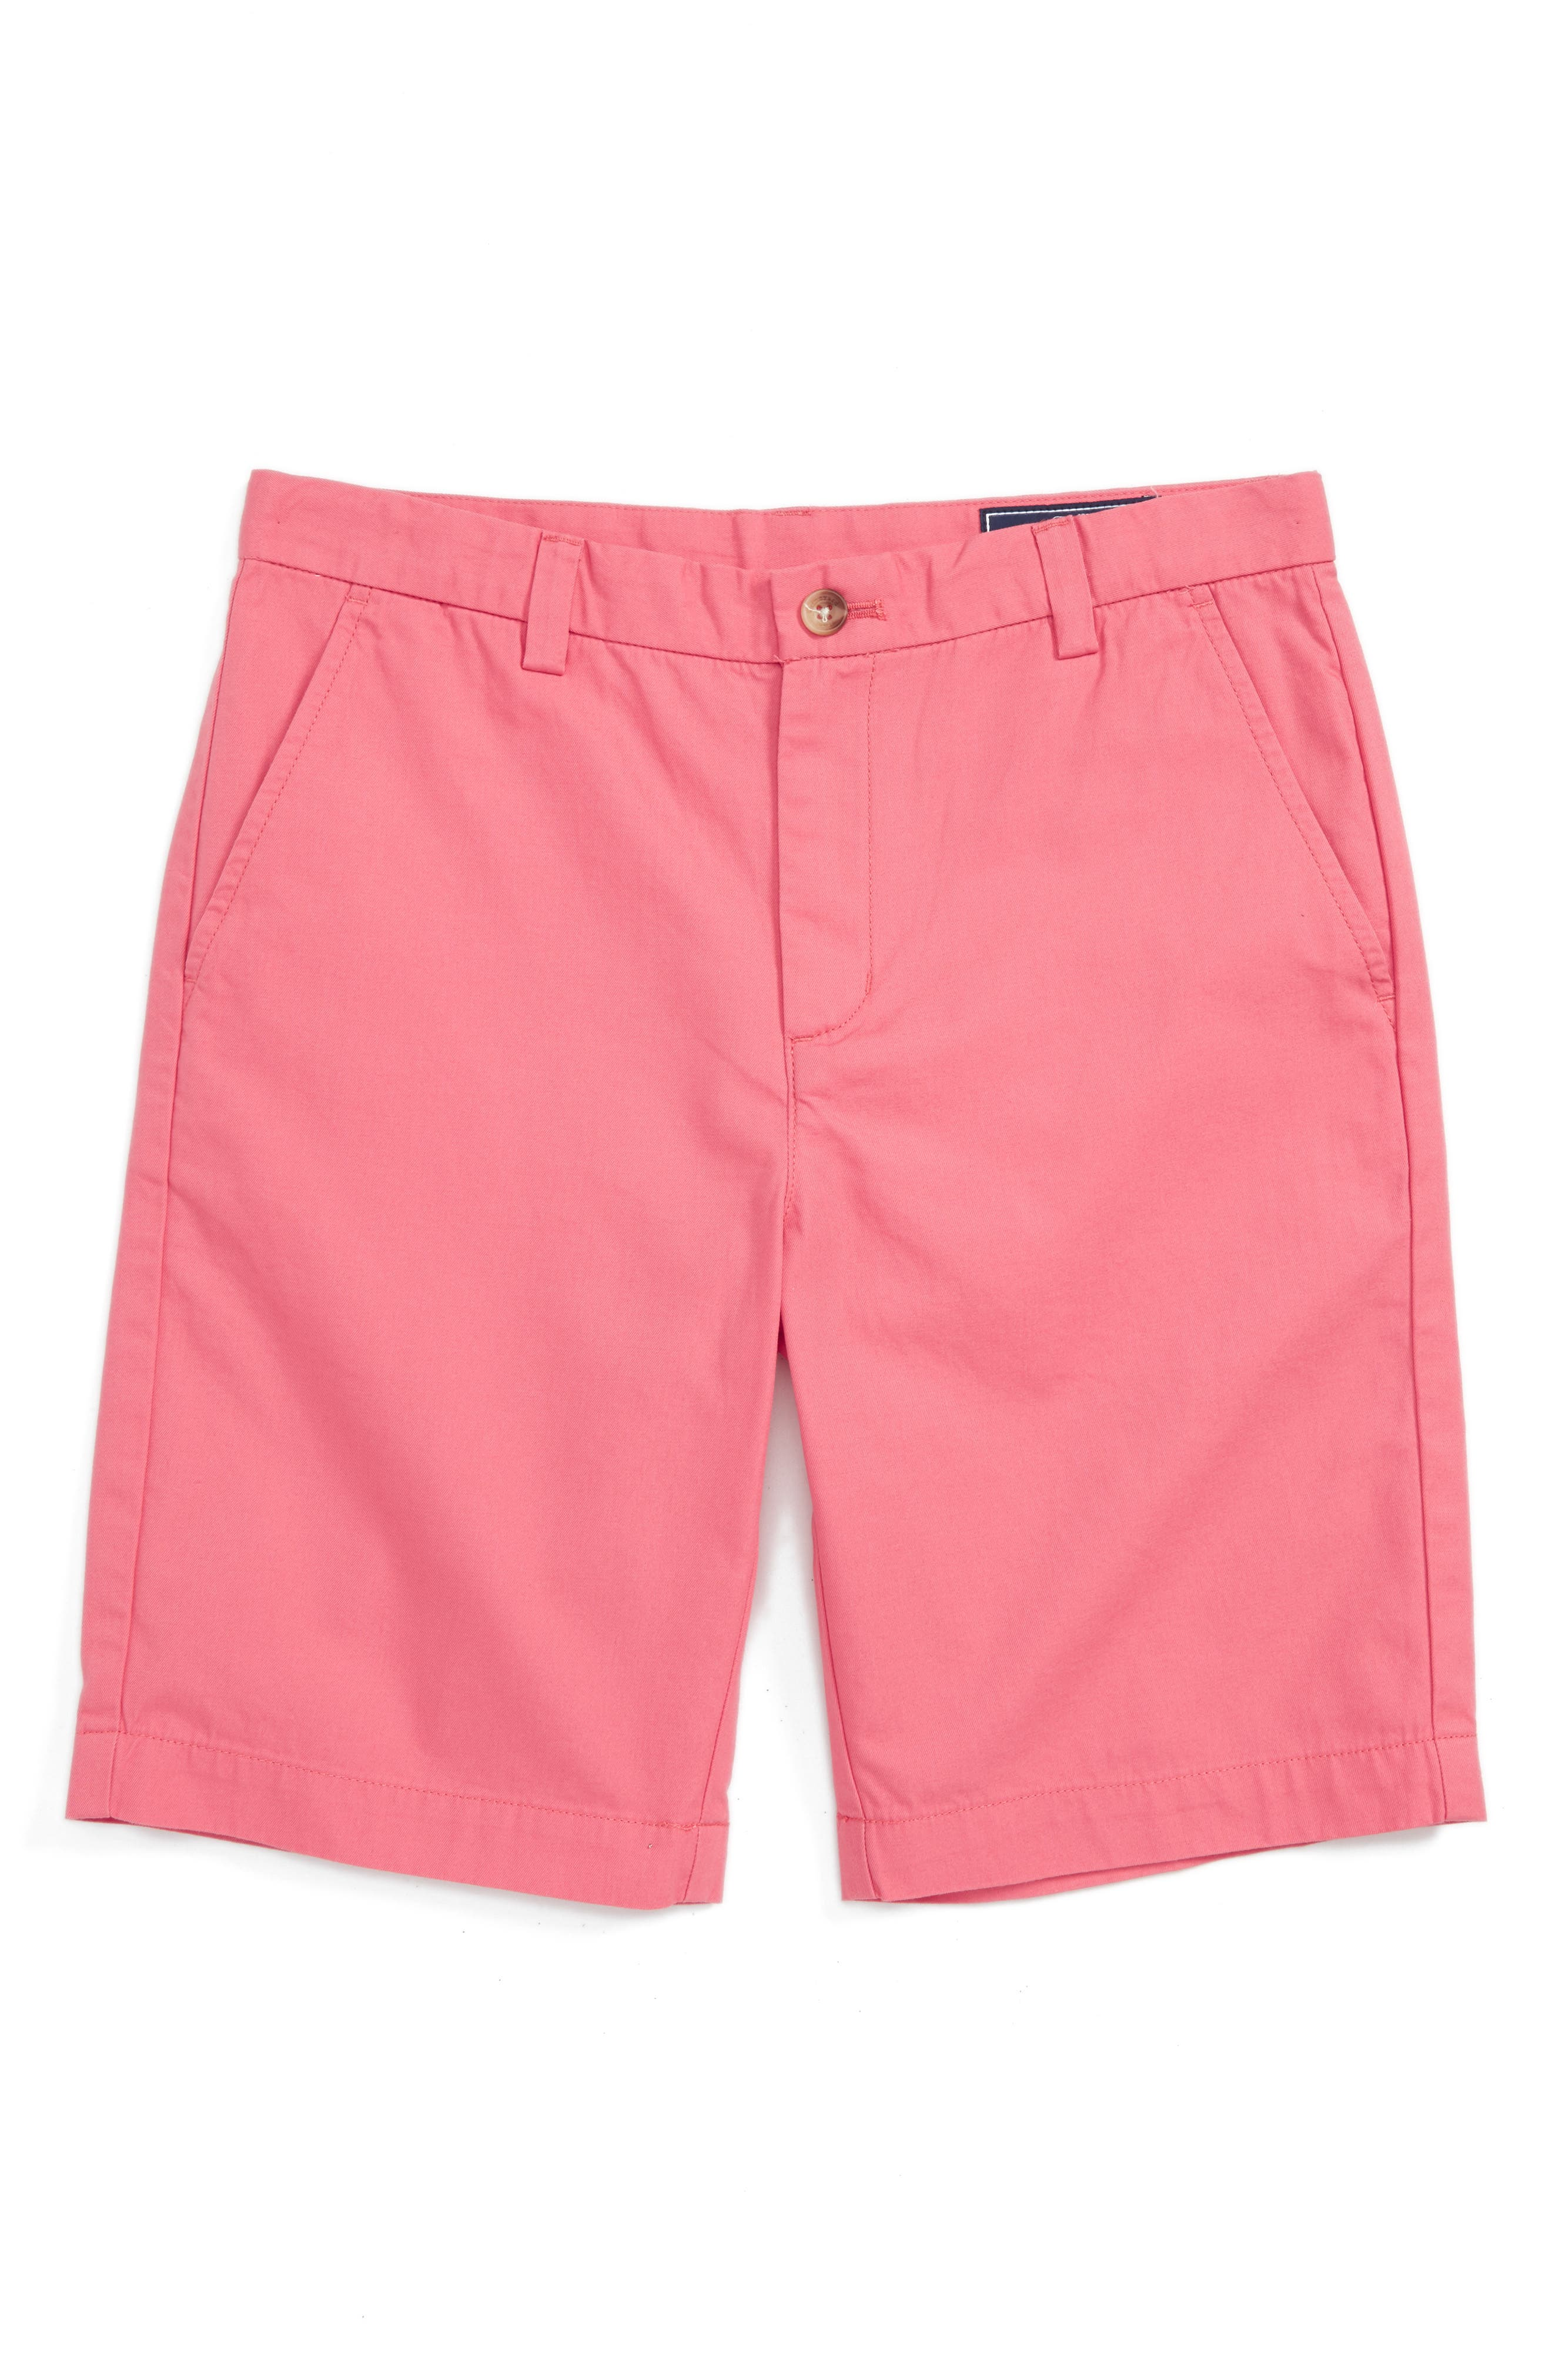 Vineyard Vines Summer - Breaker Twill Shorts (Toddler Boys, Little Boys & Big Boys)